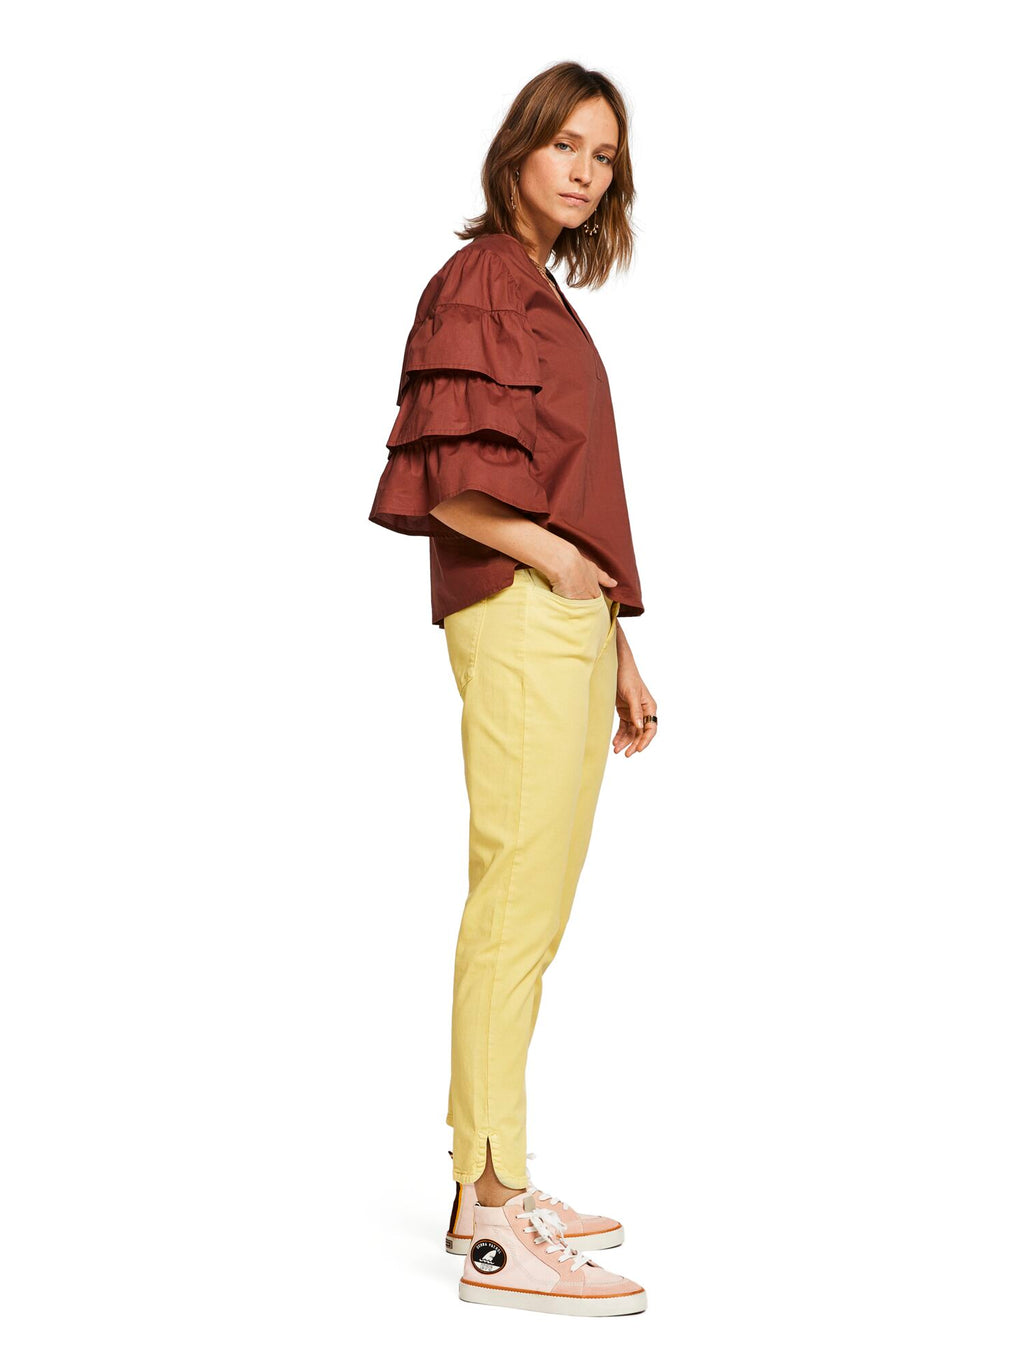 Buy Petit Ami Slim Boyfriend Pants from SCOTCH AND SODA at PAYA boutique